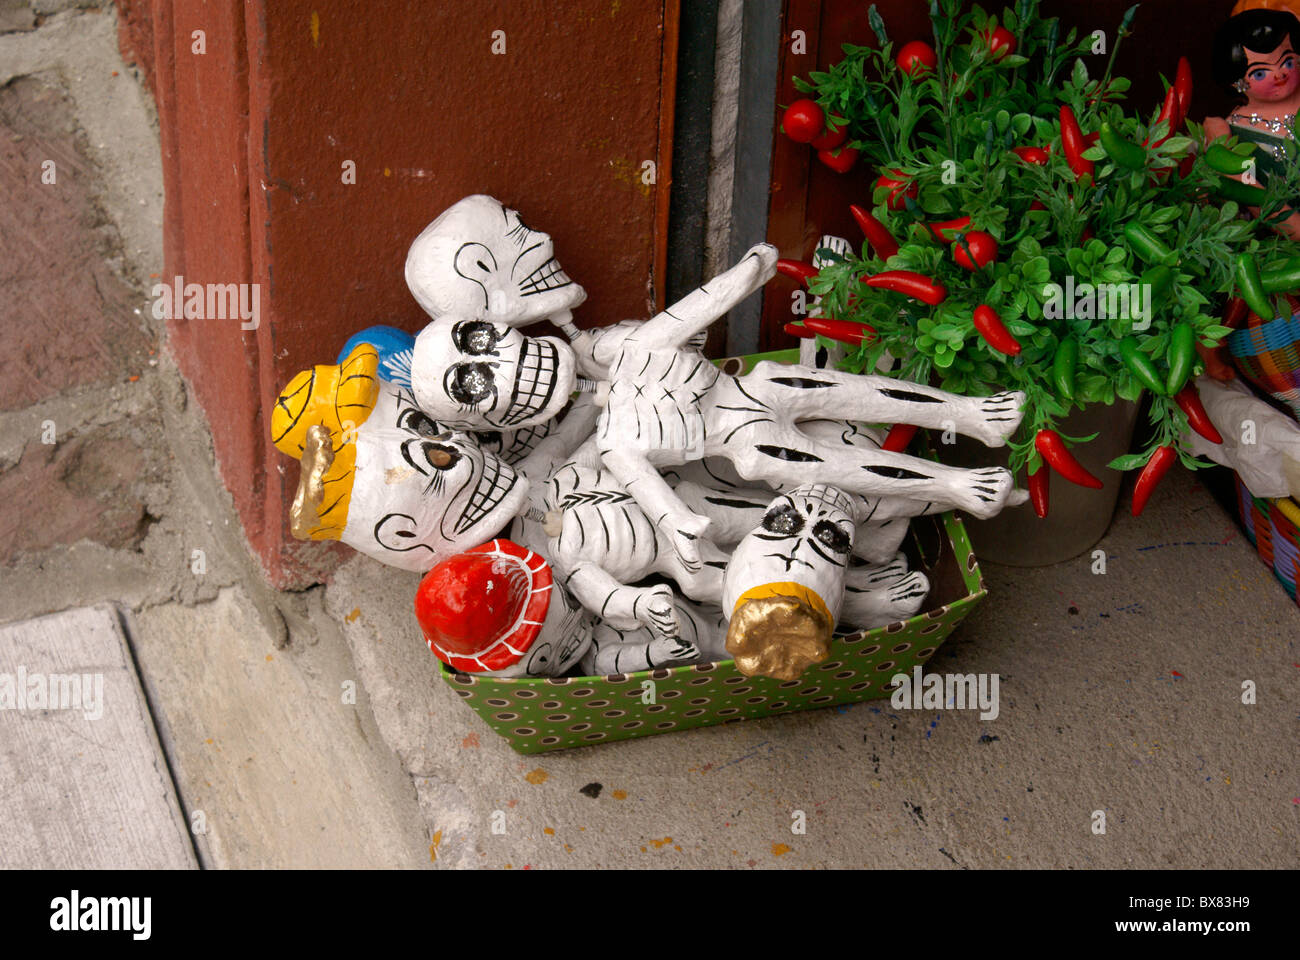 Papier mache skeletons from Oaxaca outside a store in San Miguel de Allende, Mexico - Stock Image